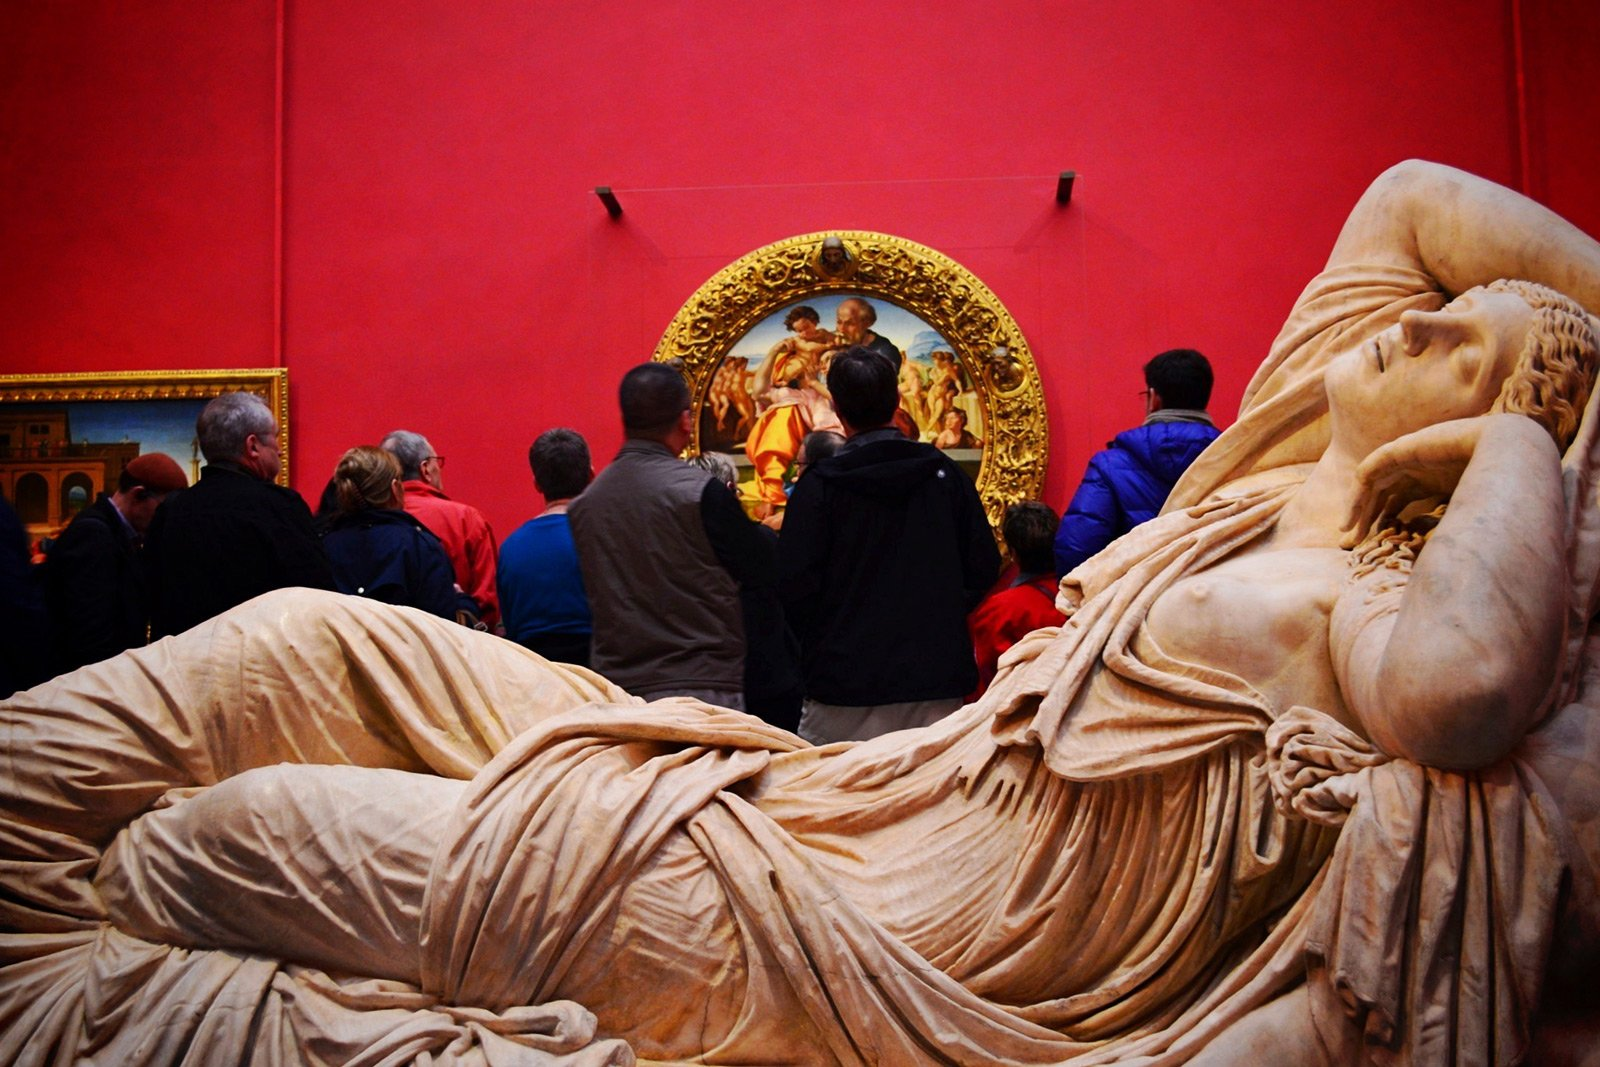 How to see the masterpieces in the Uffizi Gallery in Florence